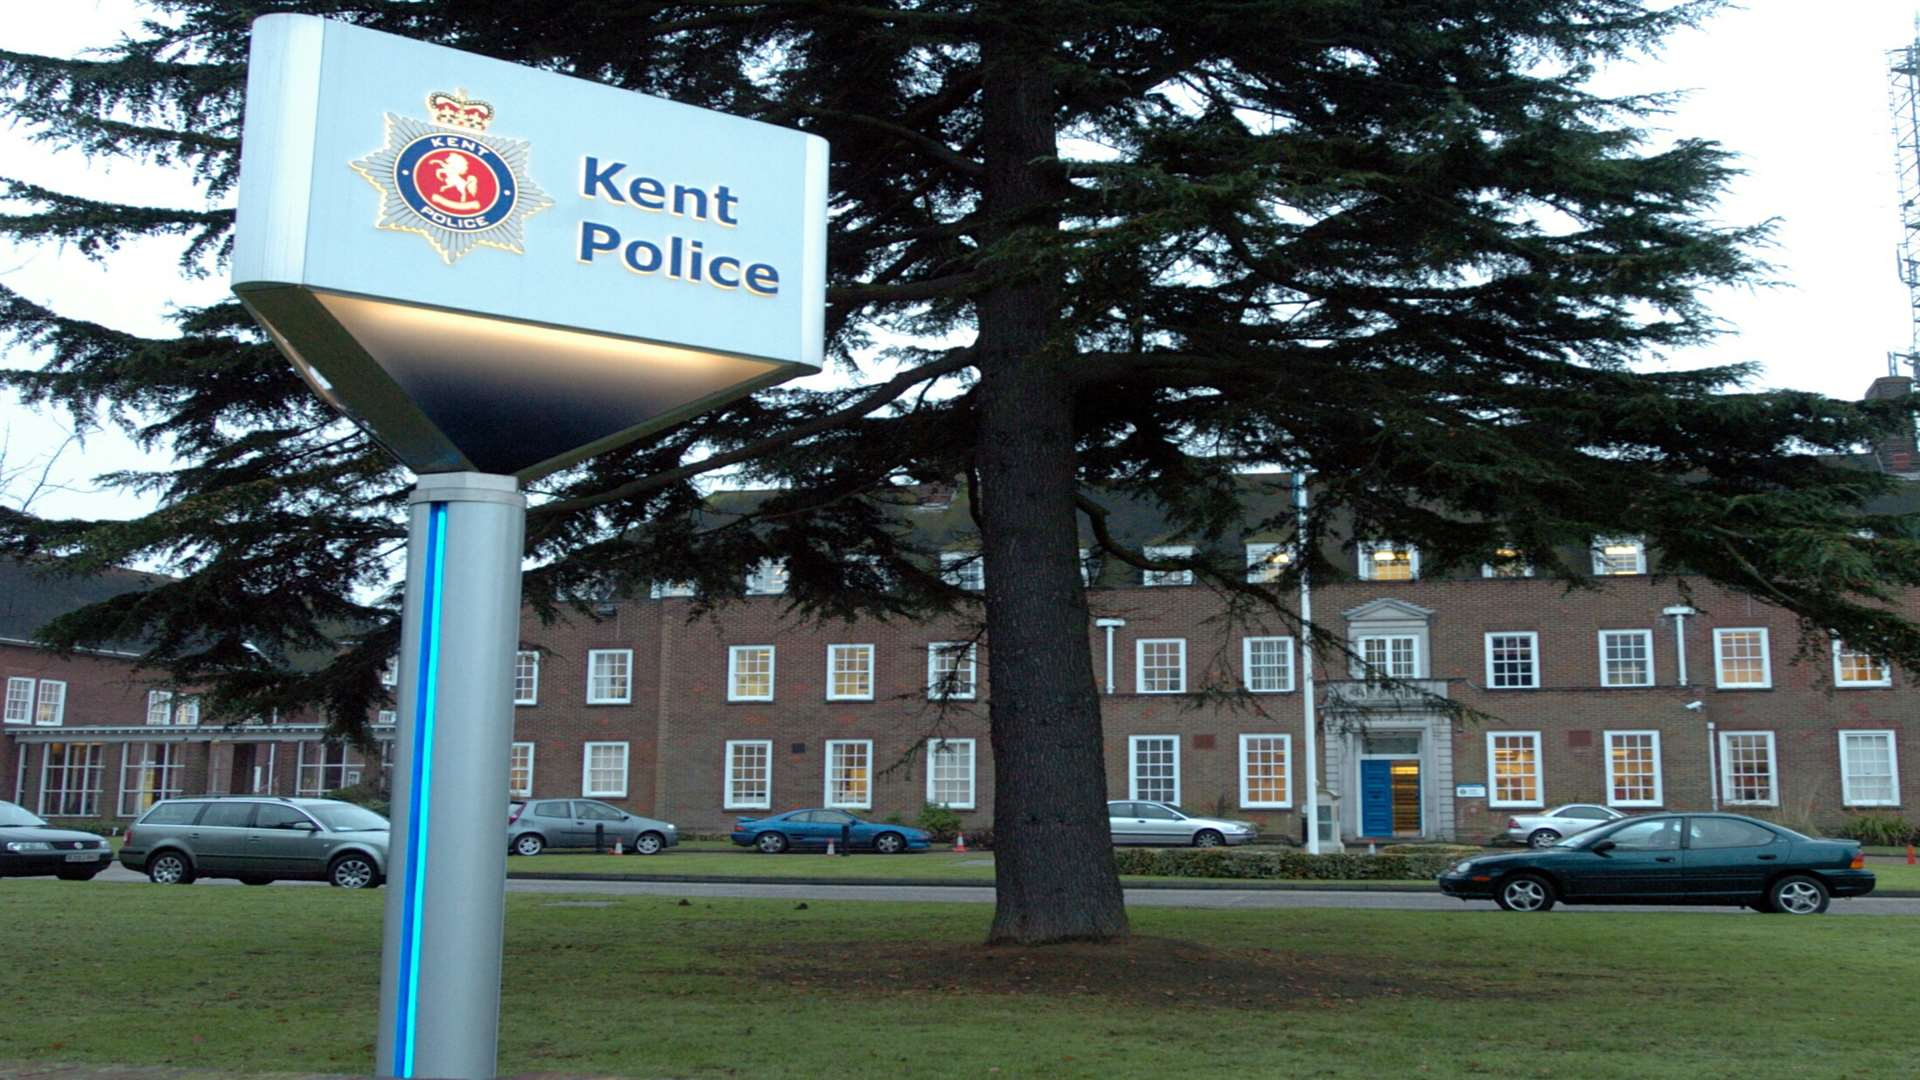 Kent Police HQ in Maidstone